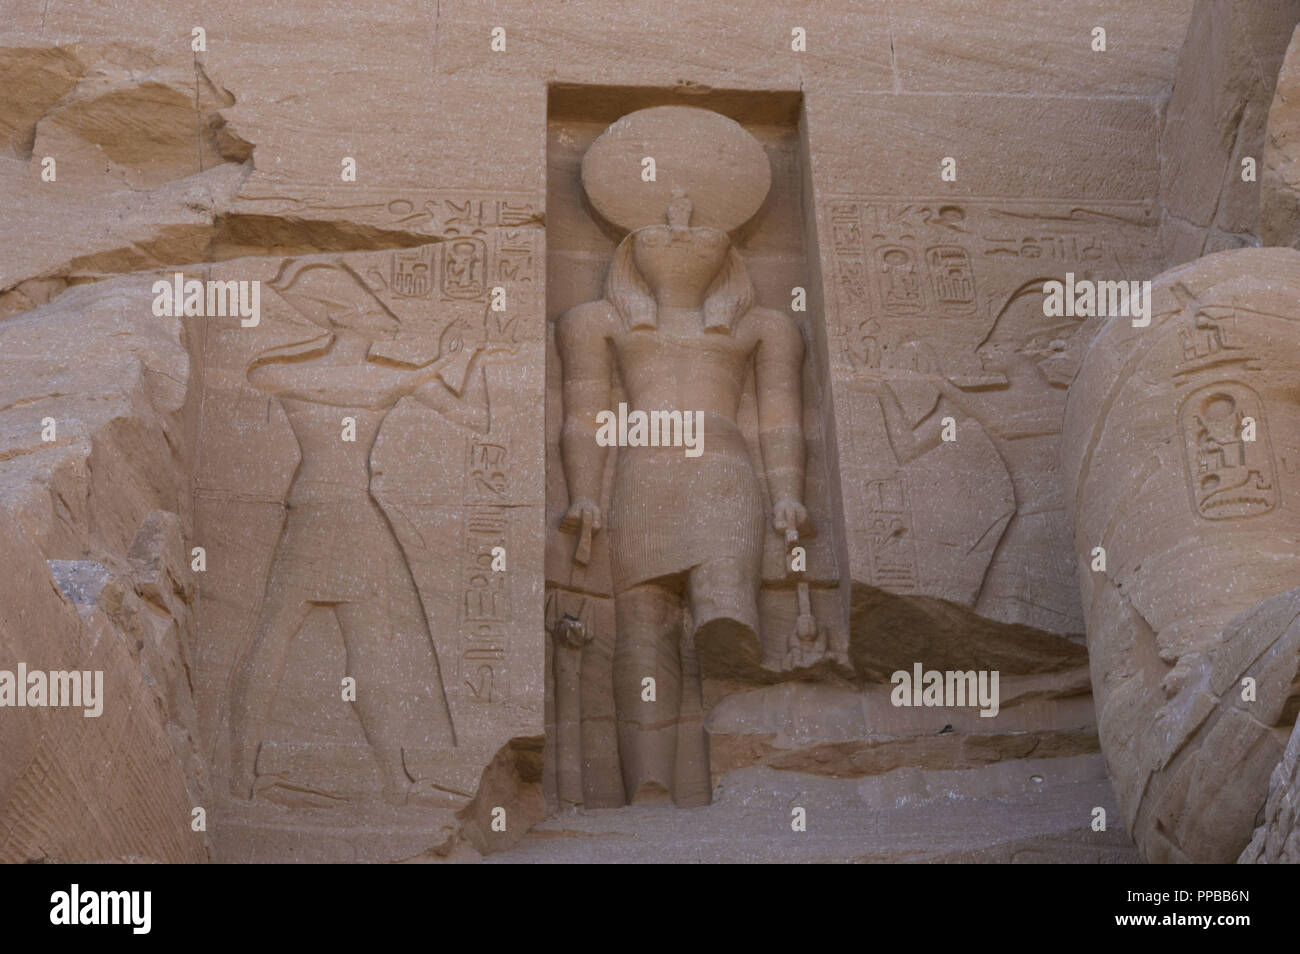 Egyptian Art. Great Temple of Ramses II. Sculpture of the god Ra carved above the entrance of the temple.19th Dynasty. New Kingdom. Abu Simbel. Egypt. Stock Photo